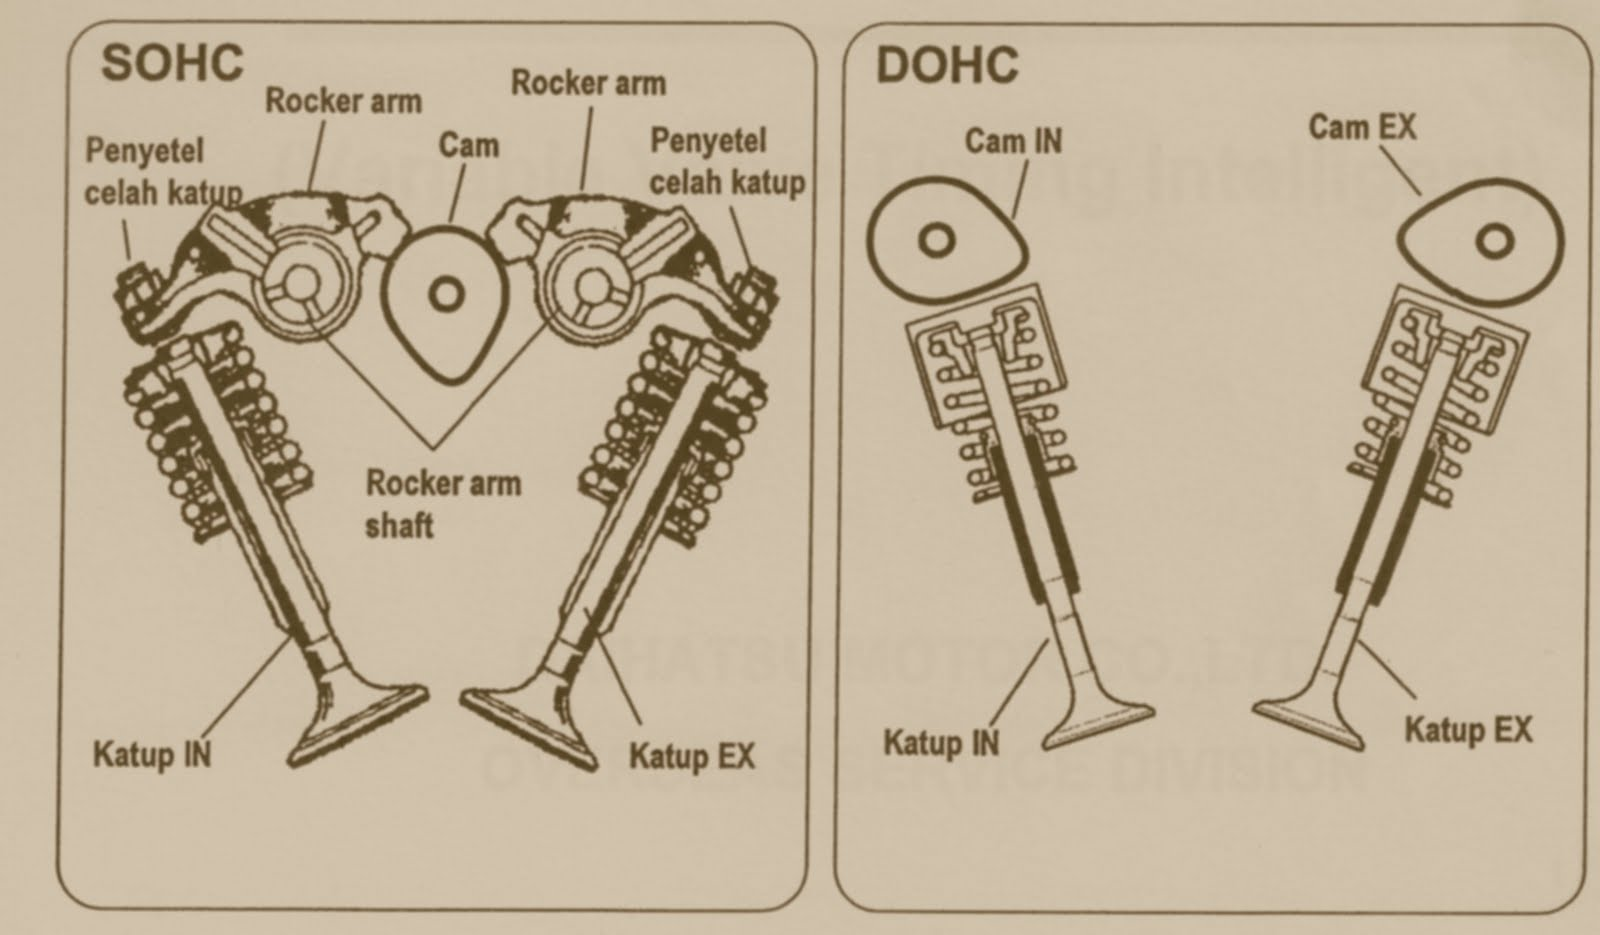 Dohc Double Over Head Camshafton Electronic Fuel Injection System Diagram